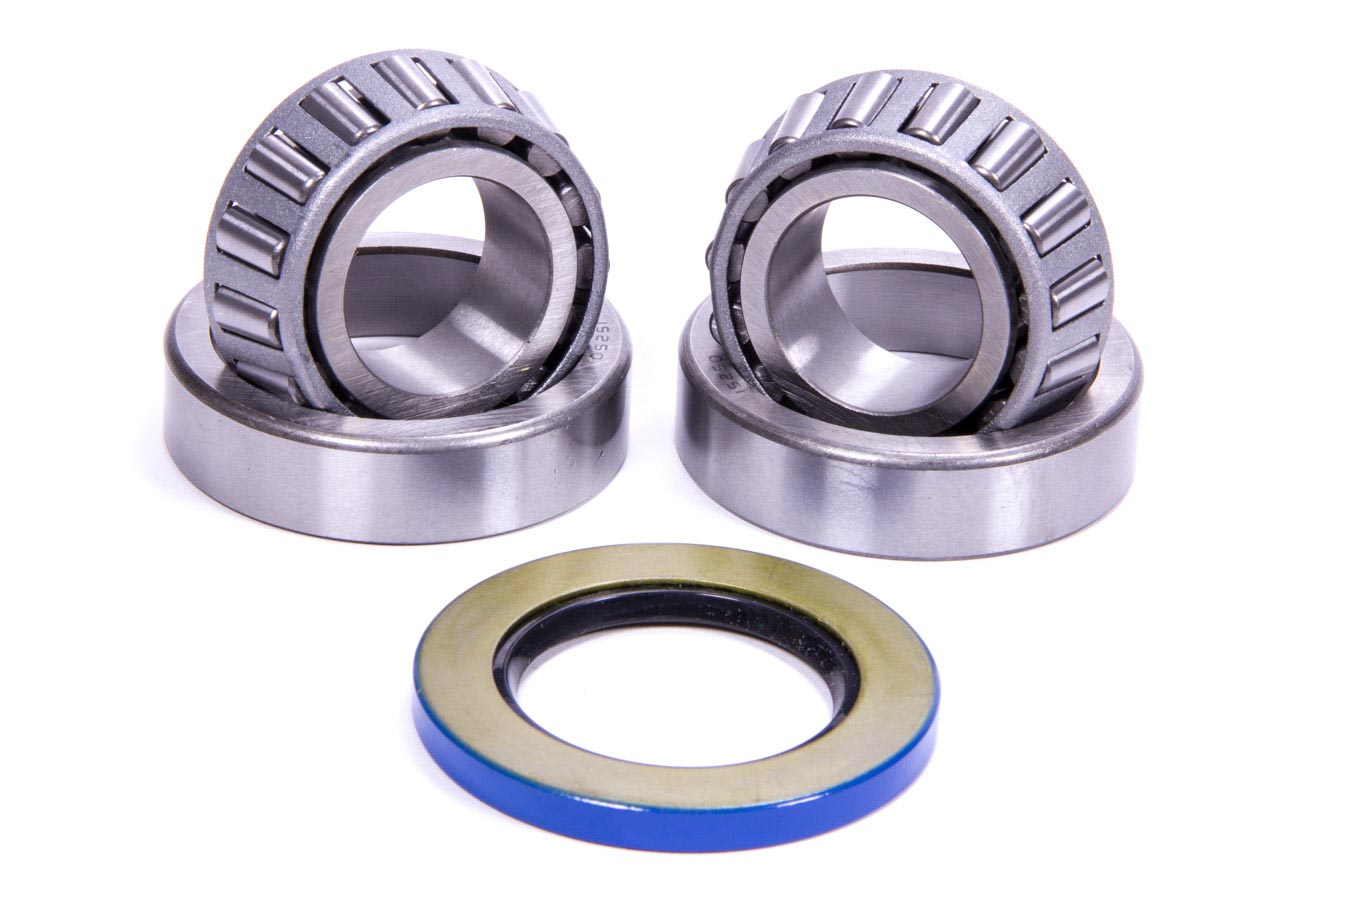 Bearing Race Amp Seal Kit For Src1972 1 S Etheridge Race